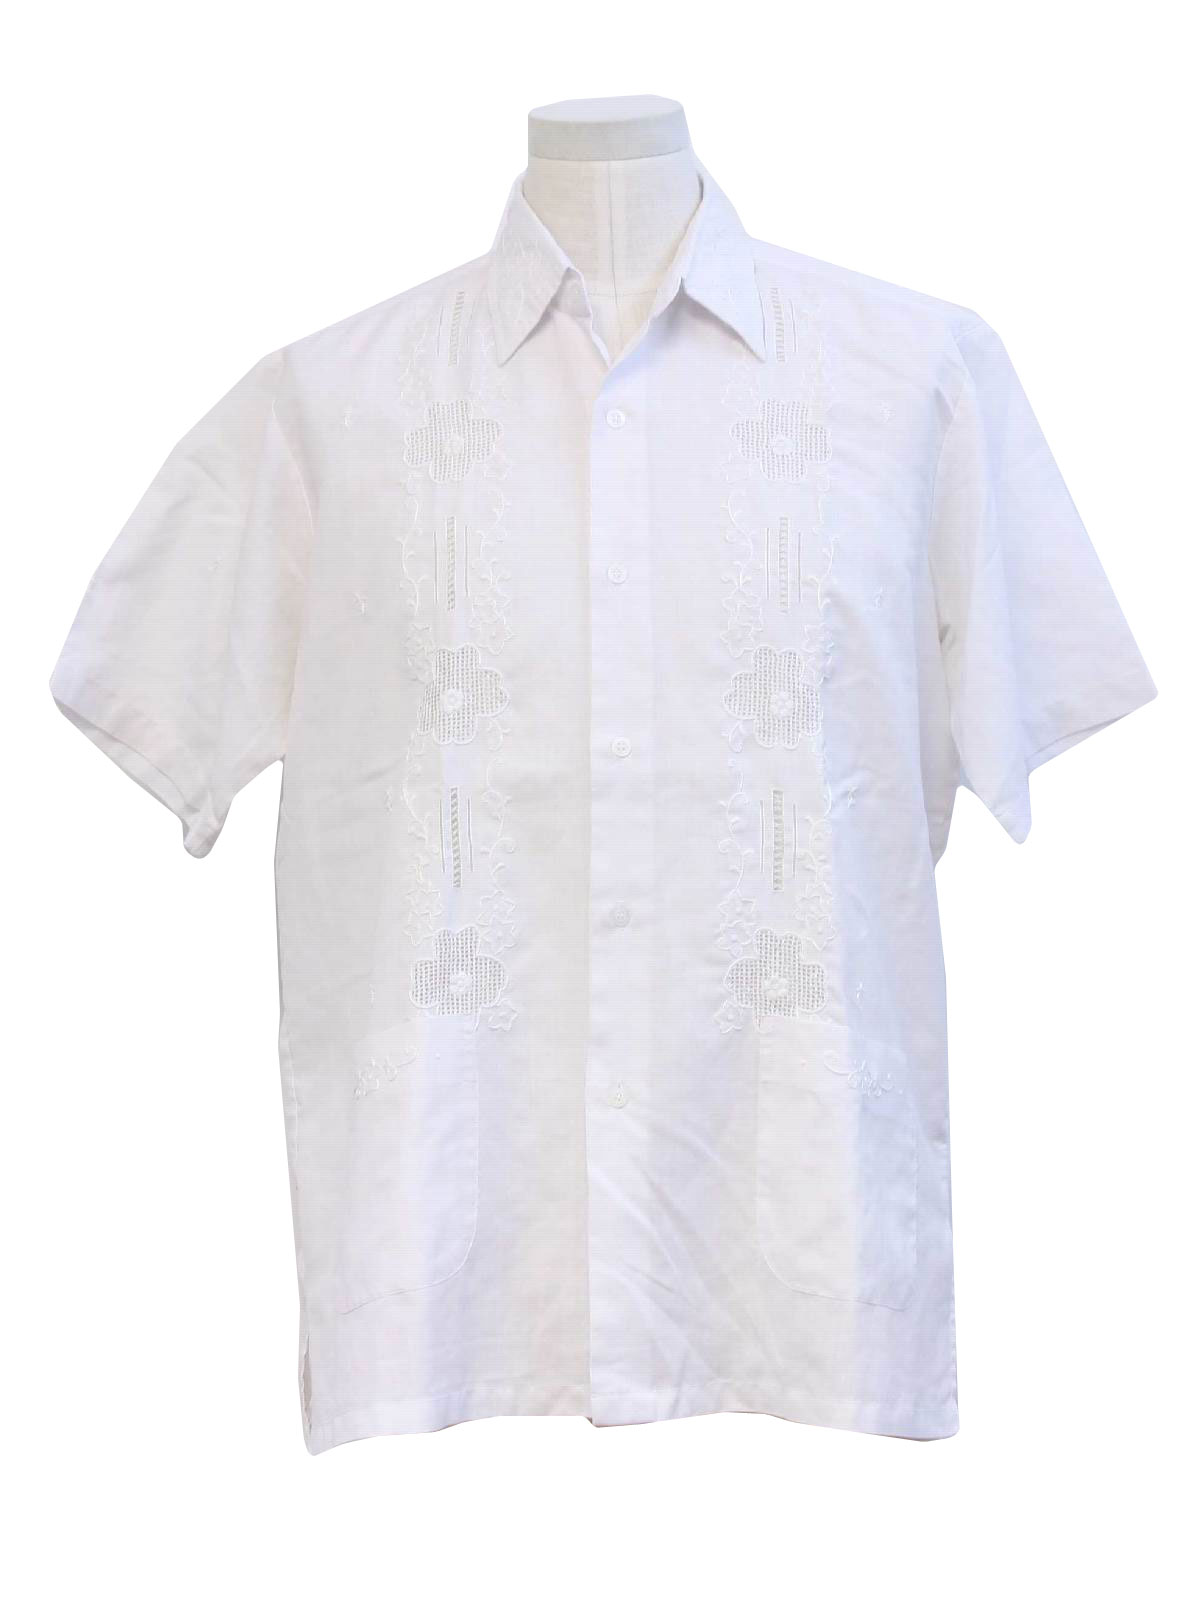 Vintage 1980 S Guayabera Shirt 80s Red Horse Mens White